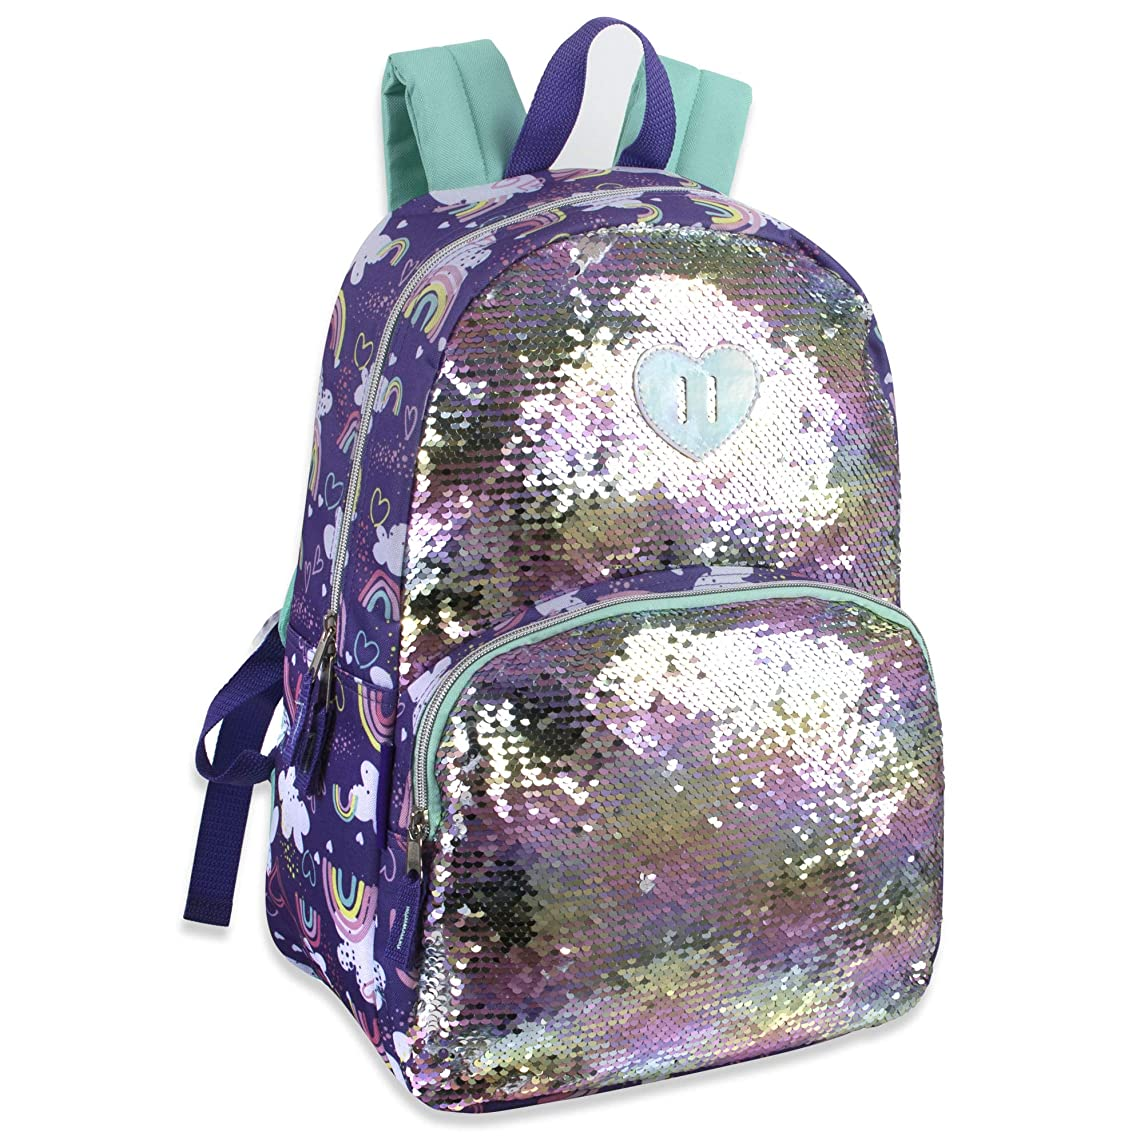 Madison & Dakota Reversible Glitter Sequin Backpacks for Girls and Women, with Padded Back and Adjustable Straps (Clouds)